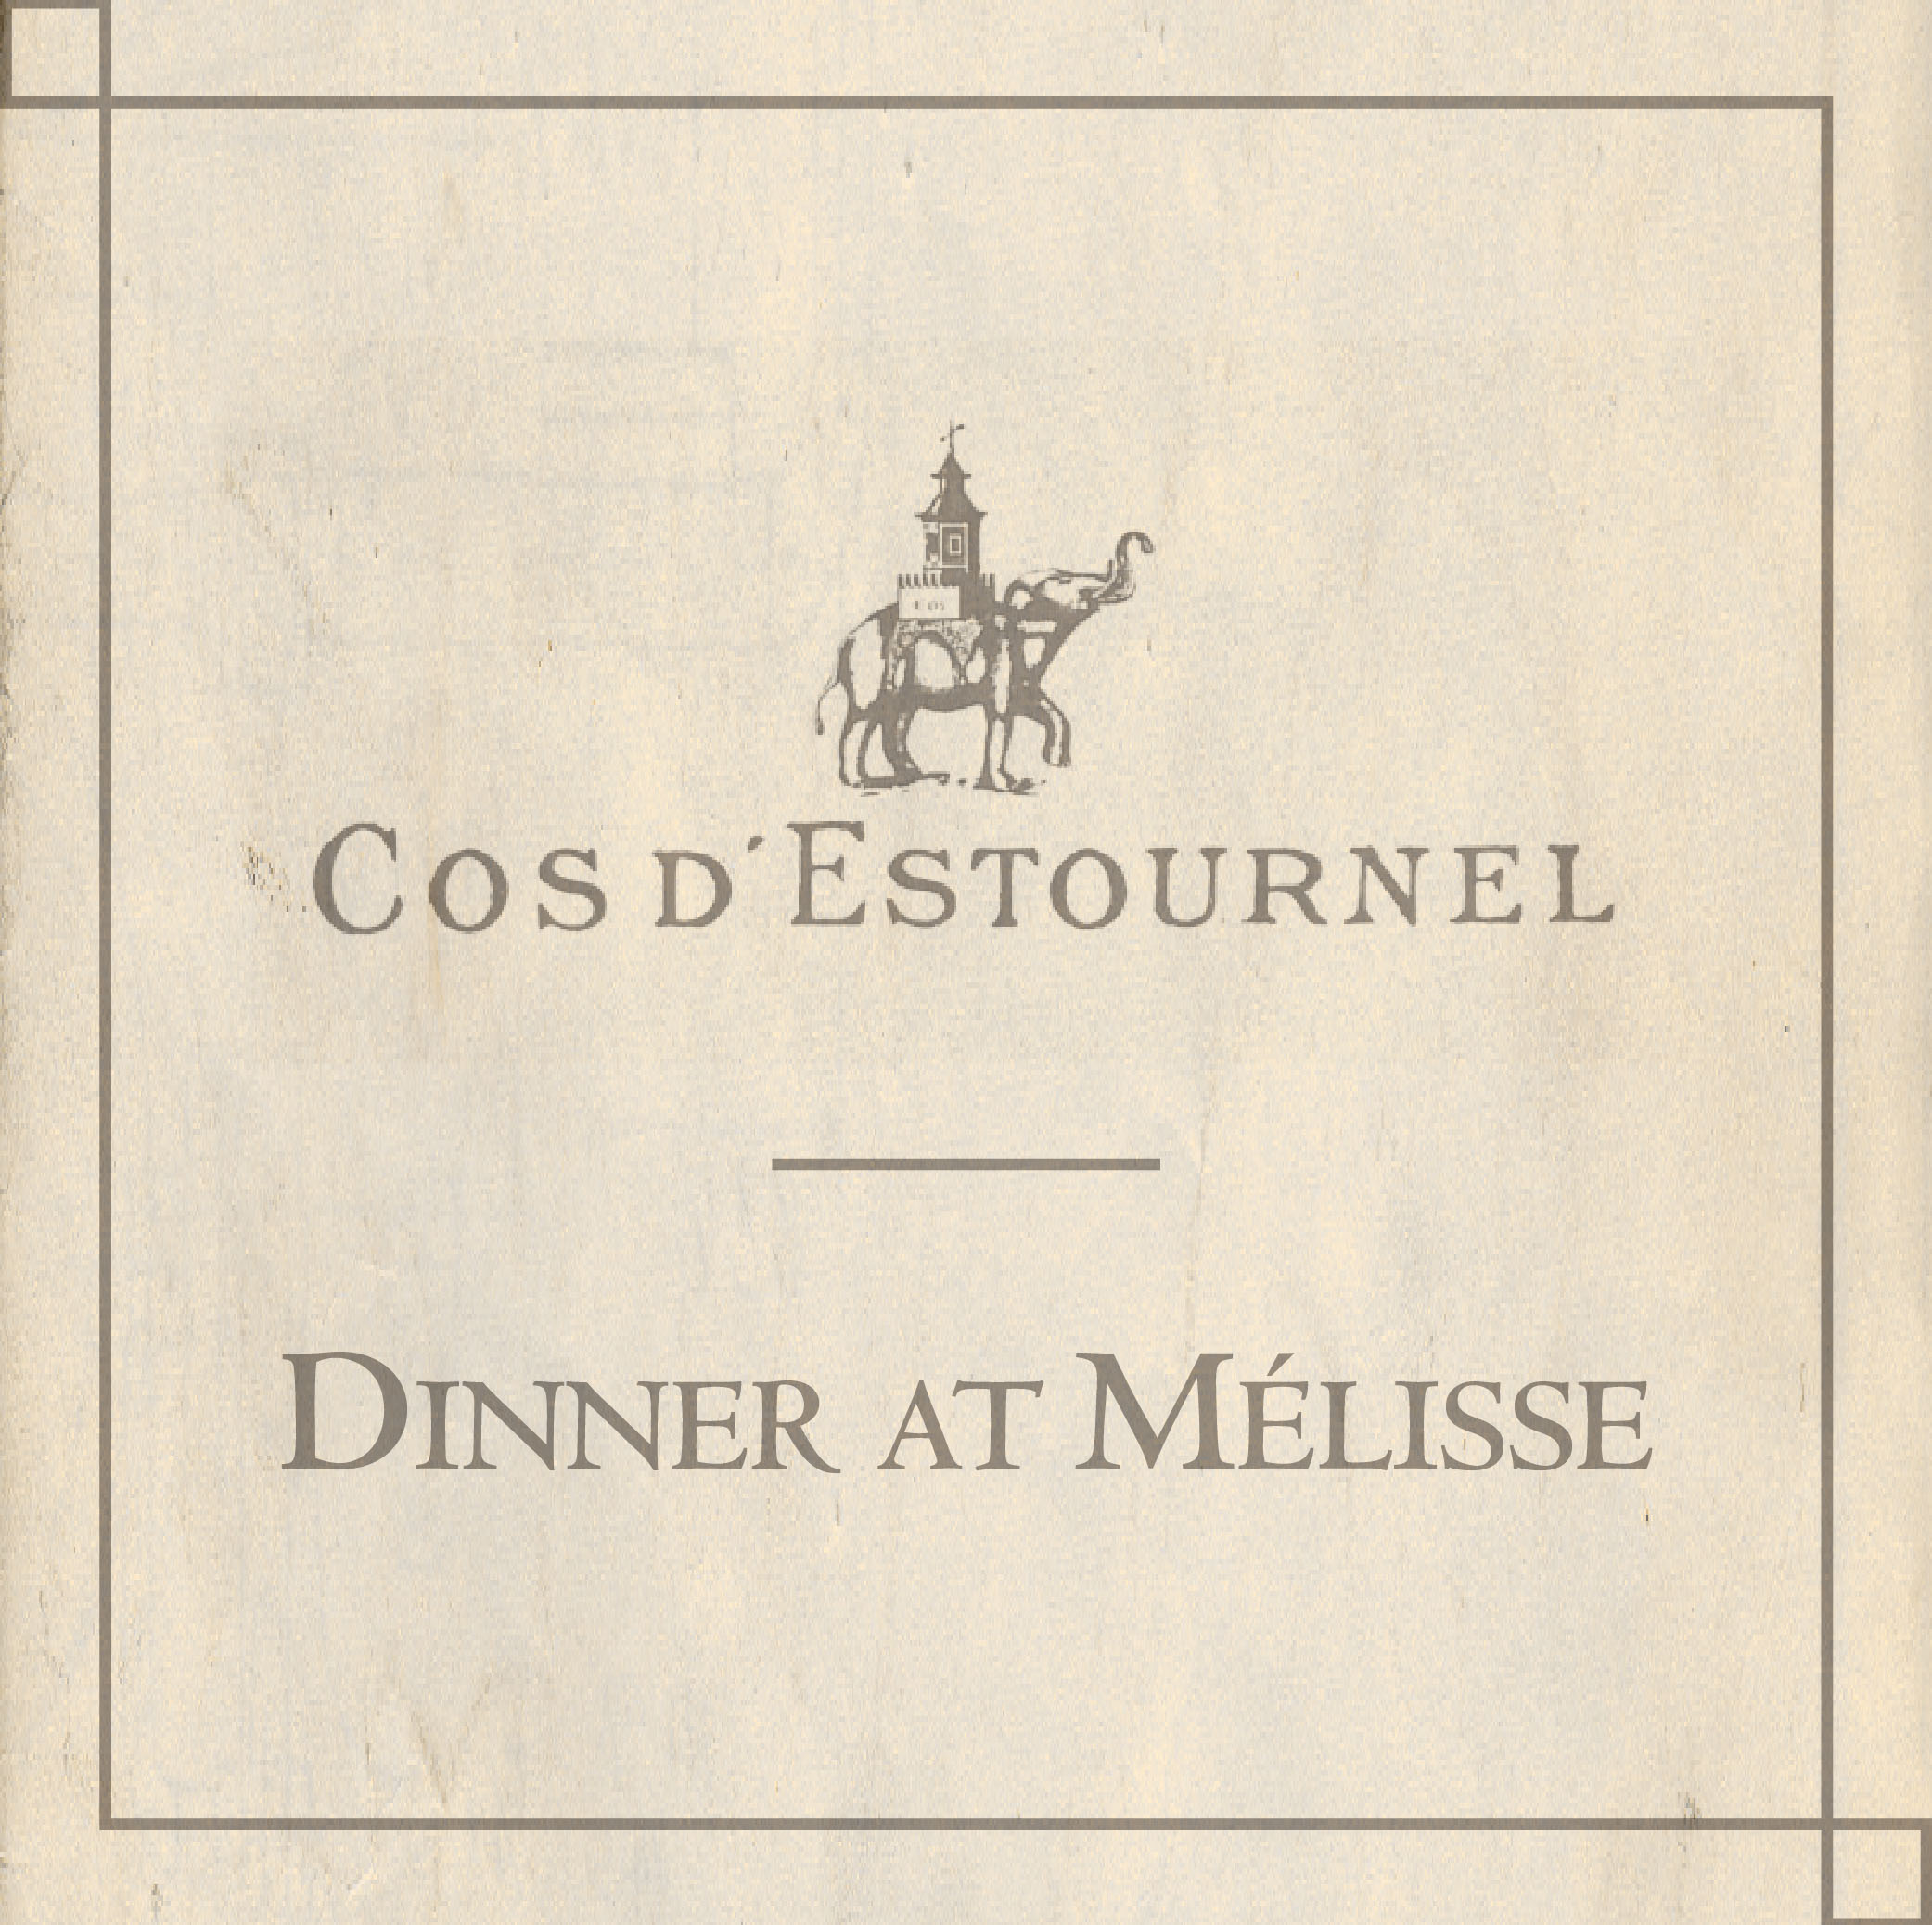 Cos d'estournel Dinner Melisse June 8, 2017